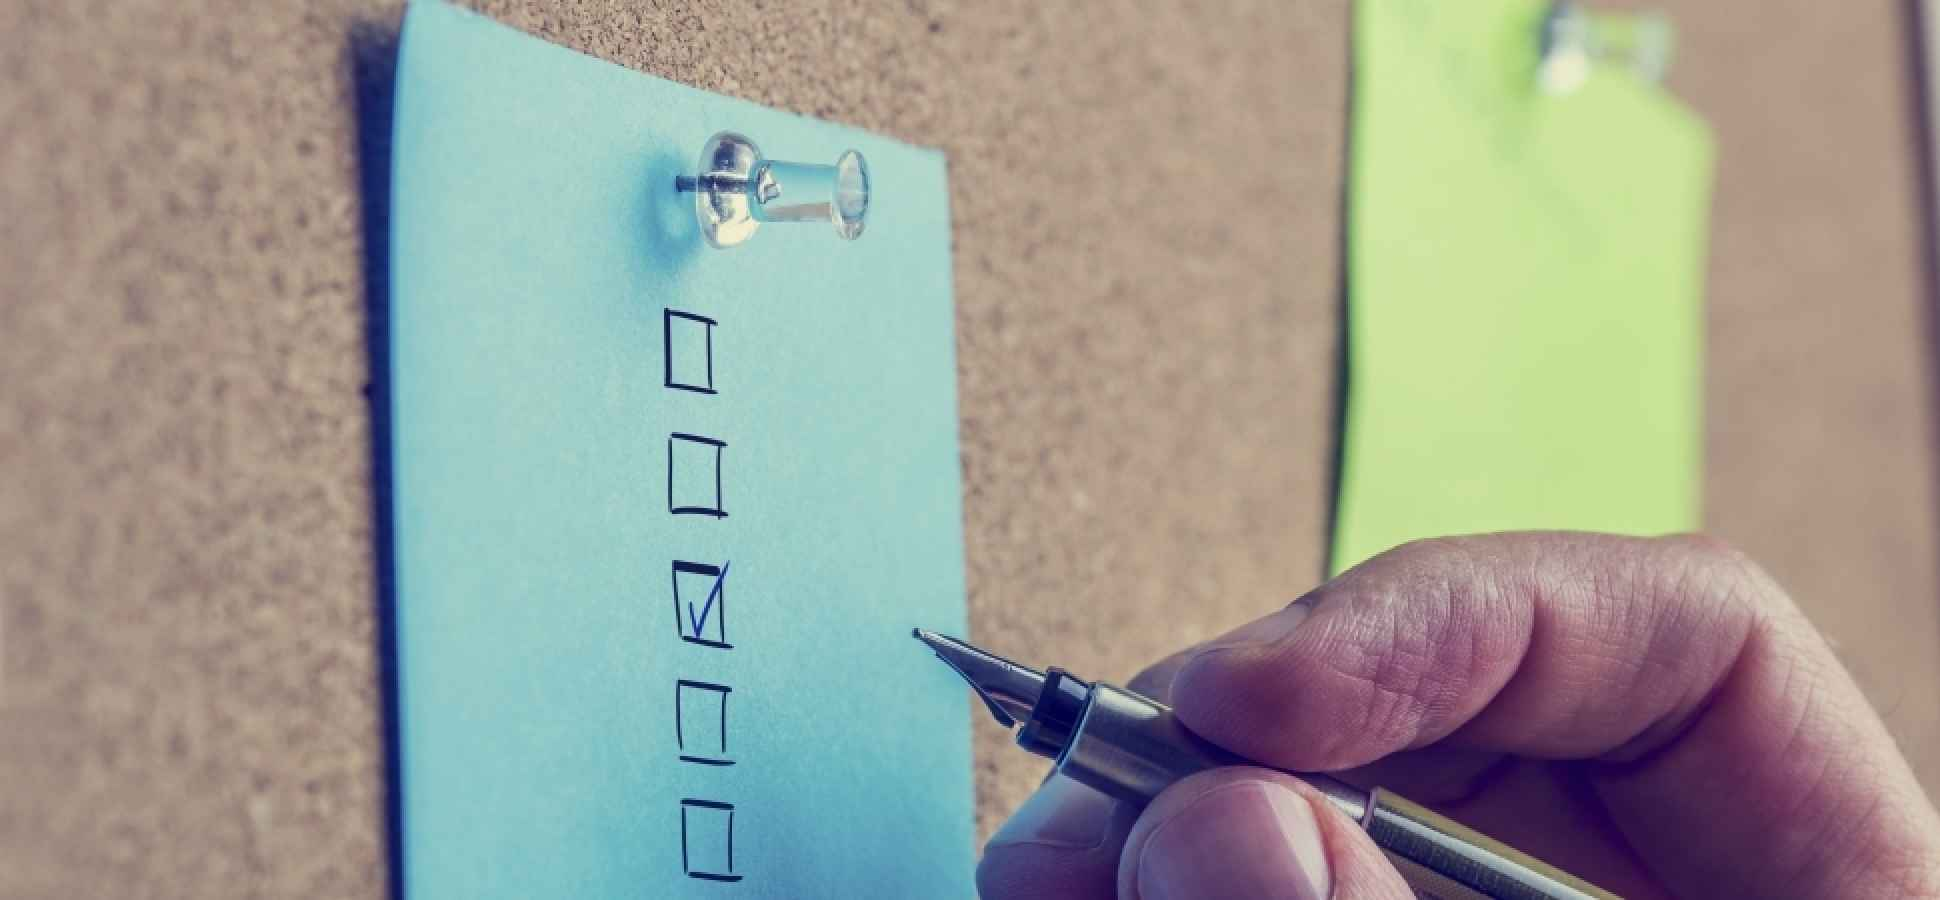 3 Simple Tactics to Increase Your Productivity